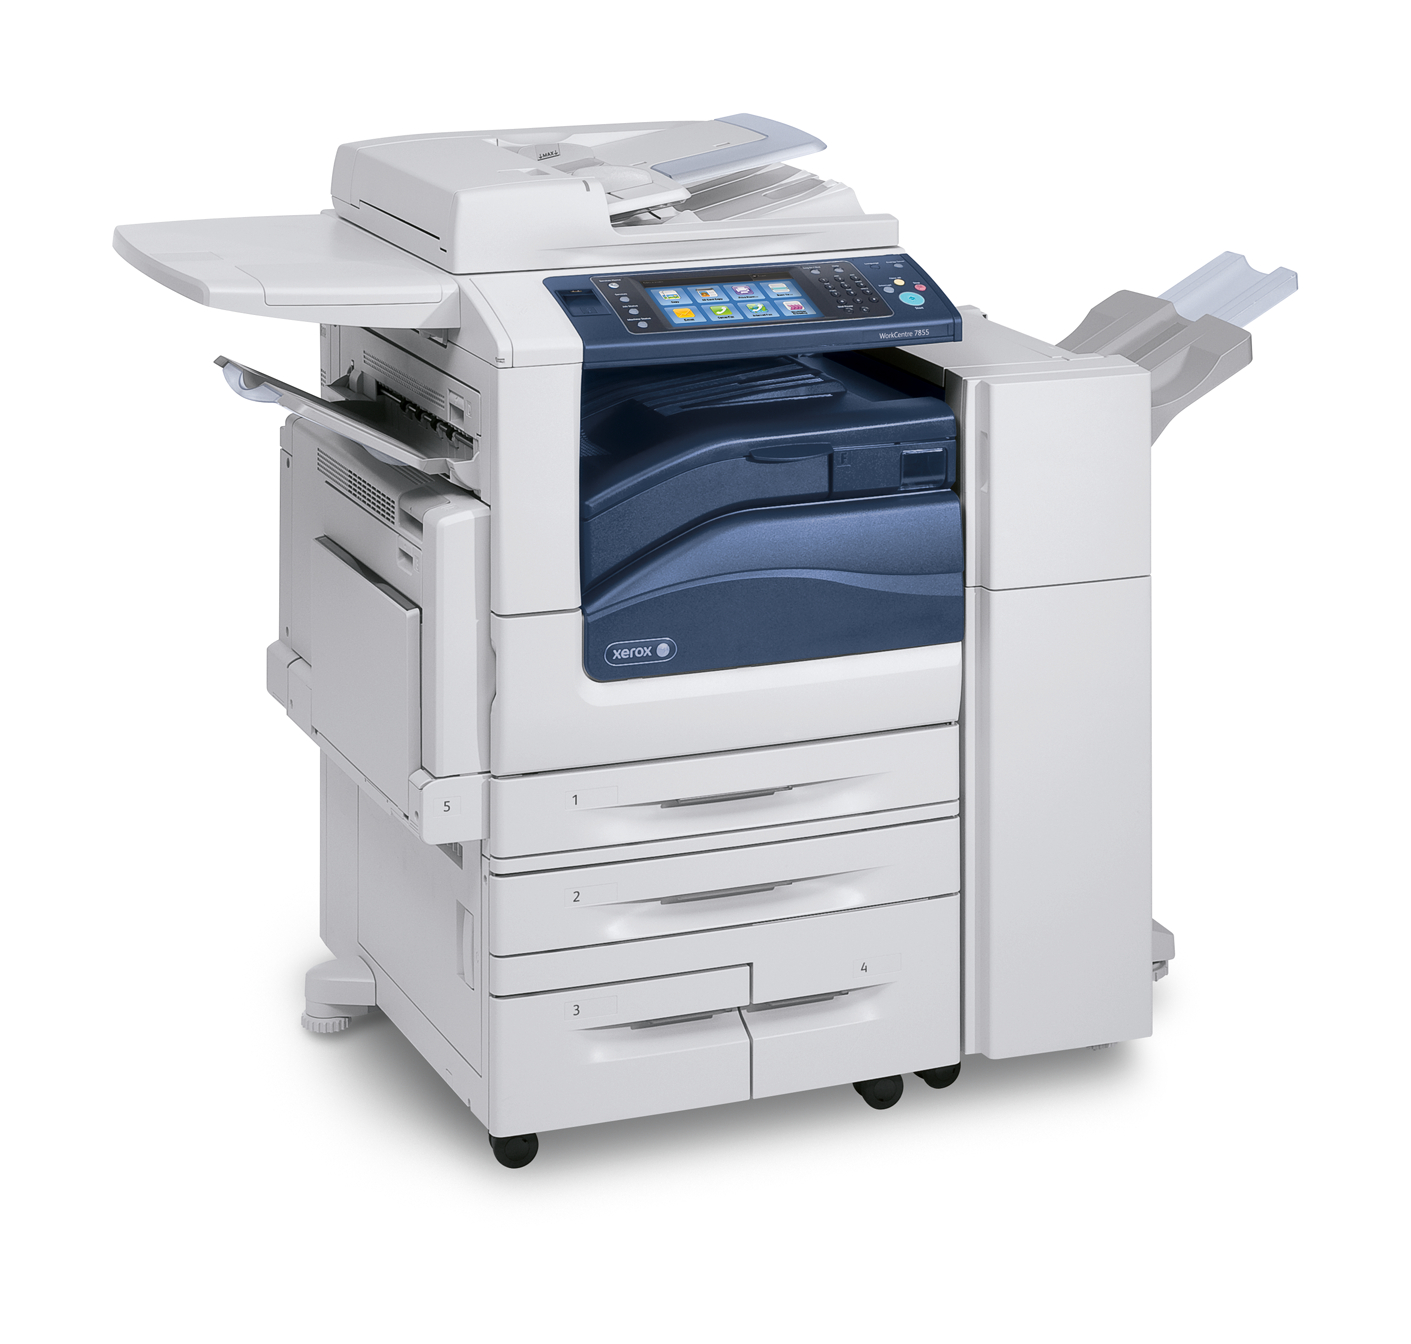 7845 xerox Lease Printer Copier Scanner 55025, 55073